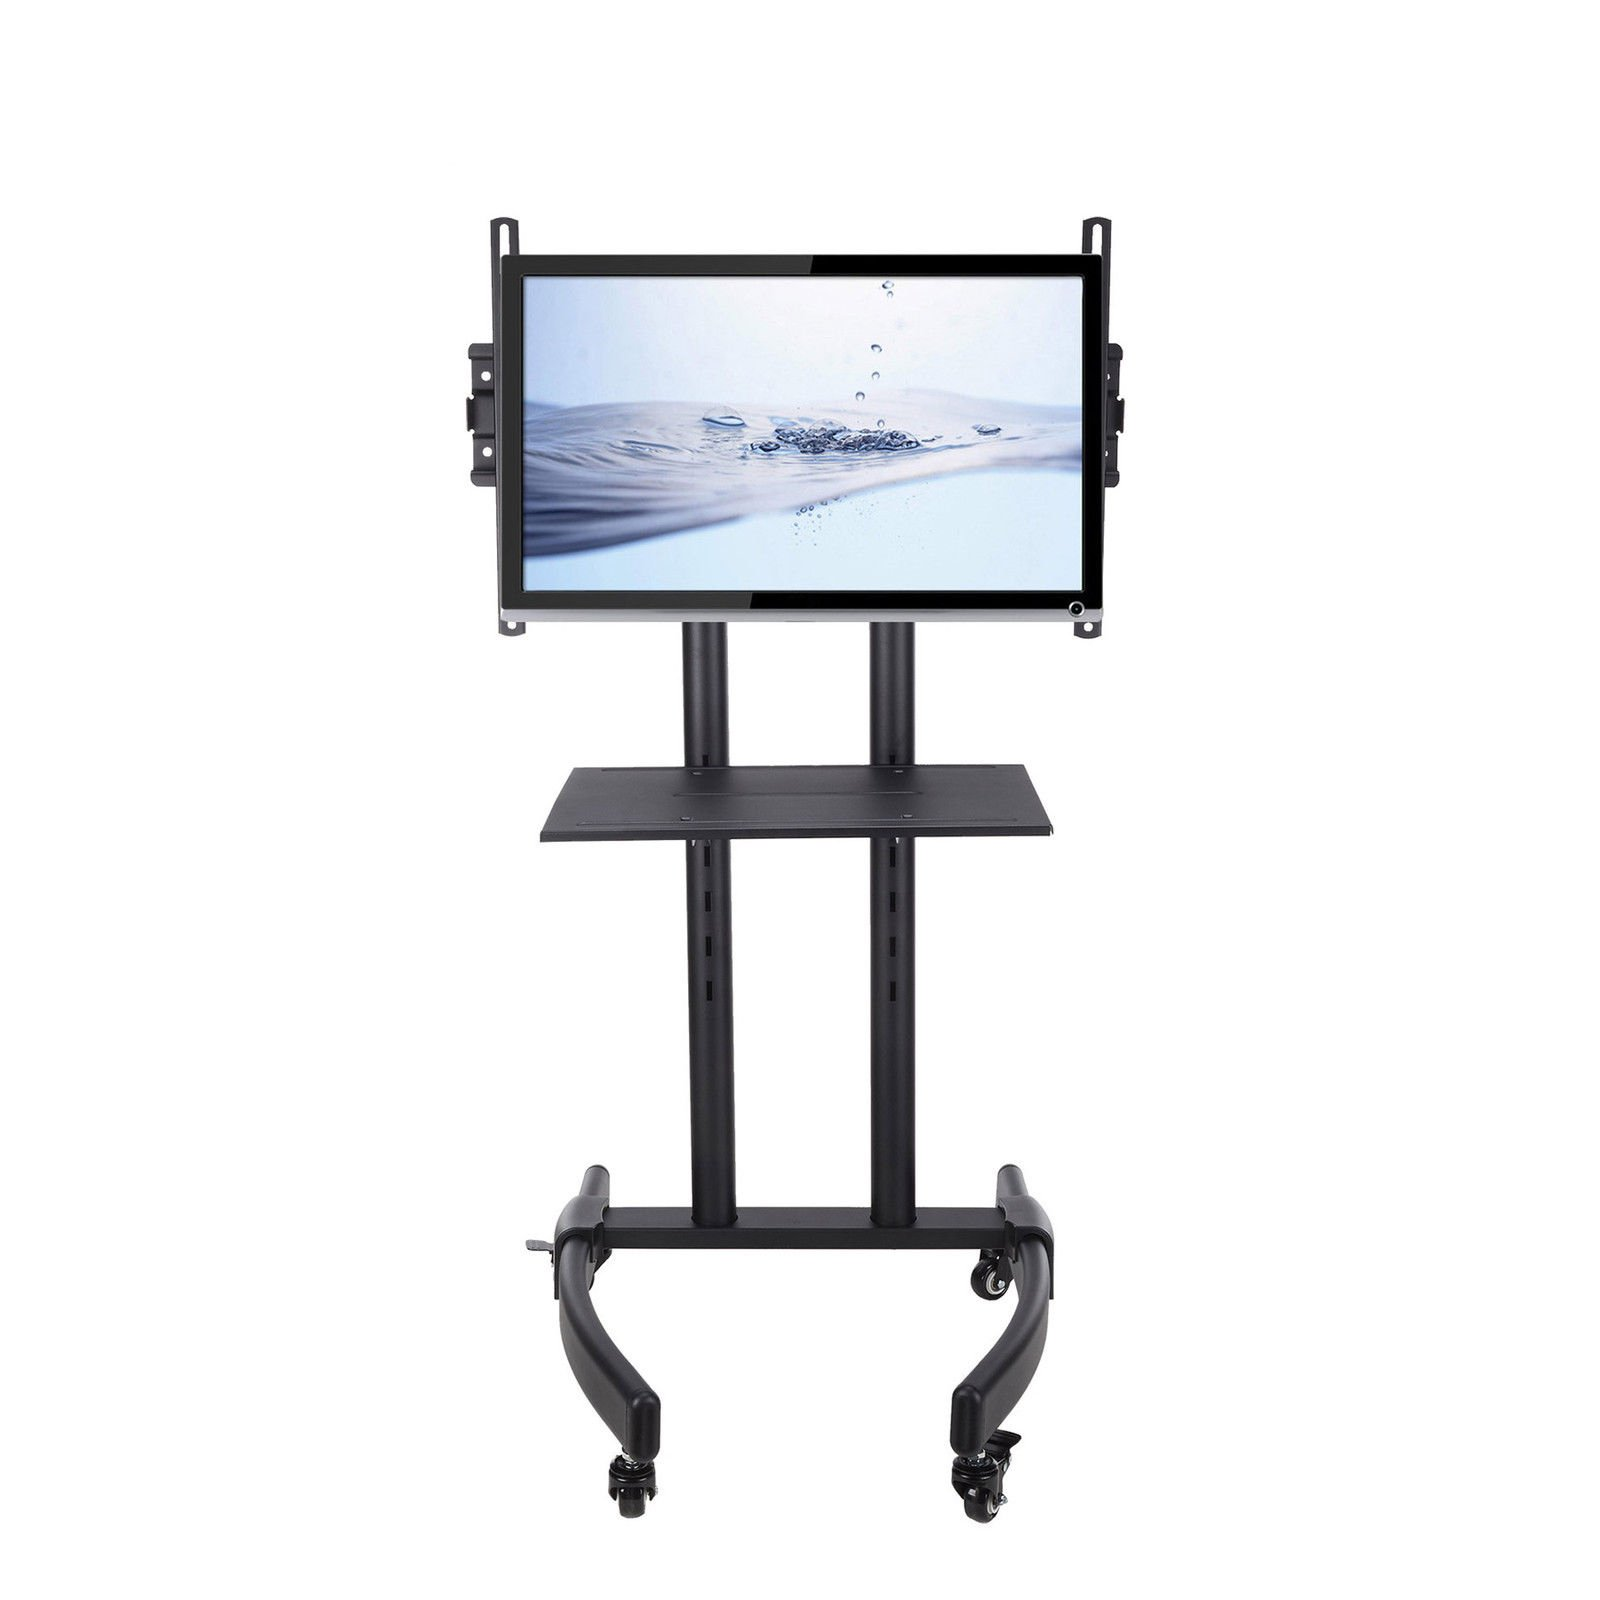 Mobile TV Rolling Cart for LCD LED Plasma Flat Panels Stand with Lockable Wheels Adjustable Height Metal Shelf Conference Rooms Classrooms Homes to 80lbs Fits 32'' to 65'' Black Matte